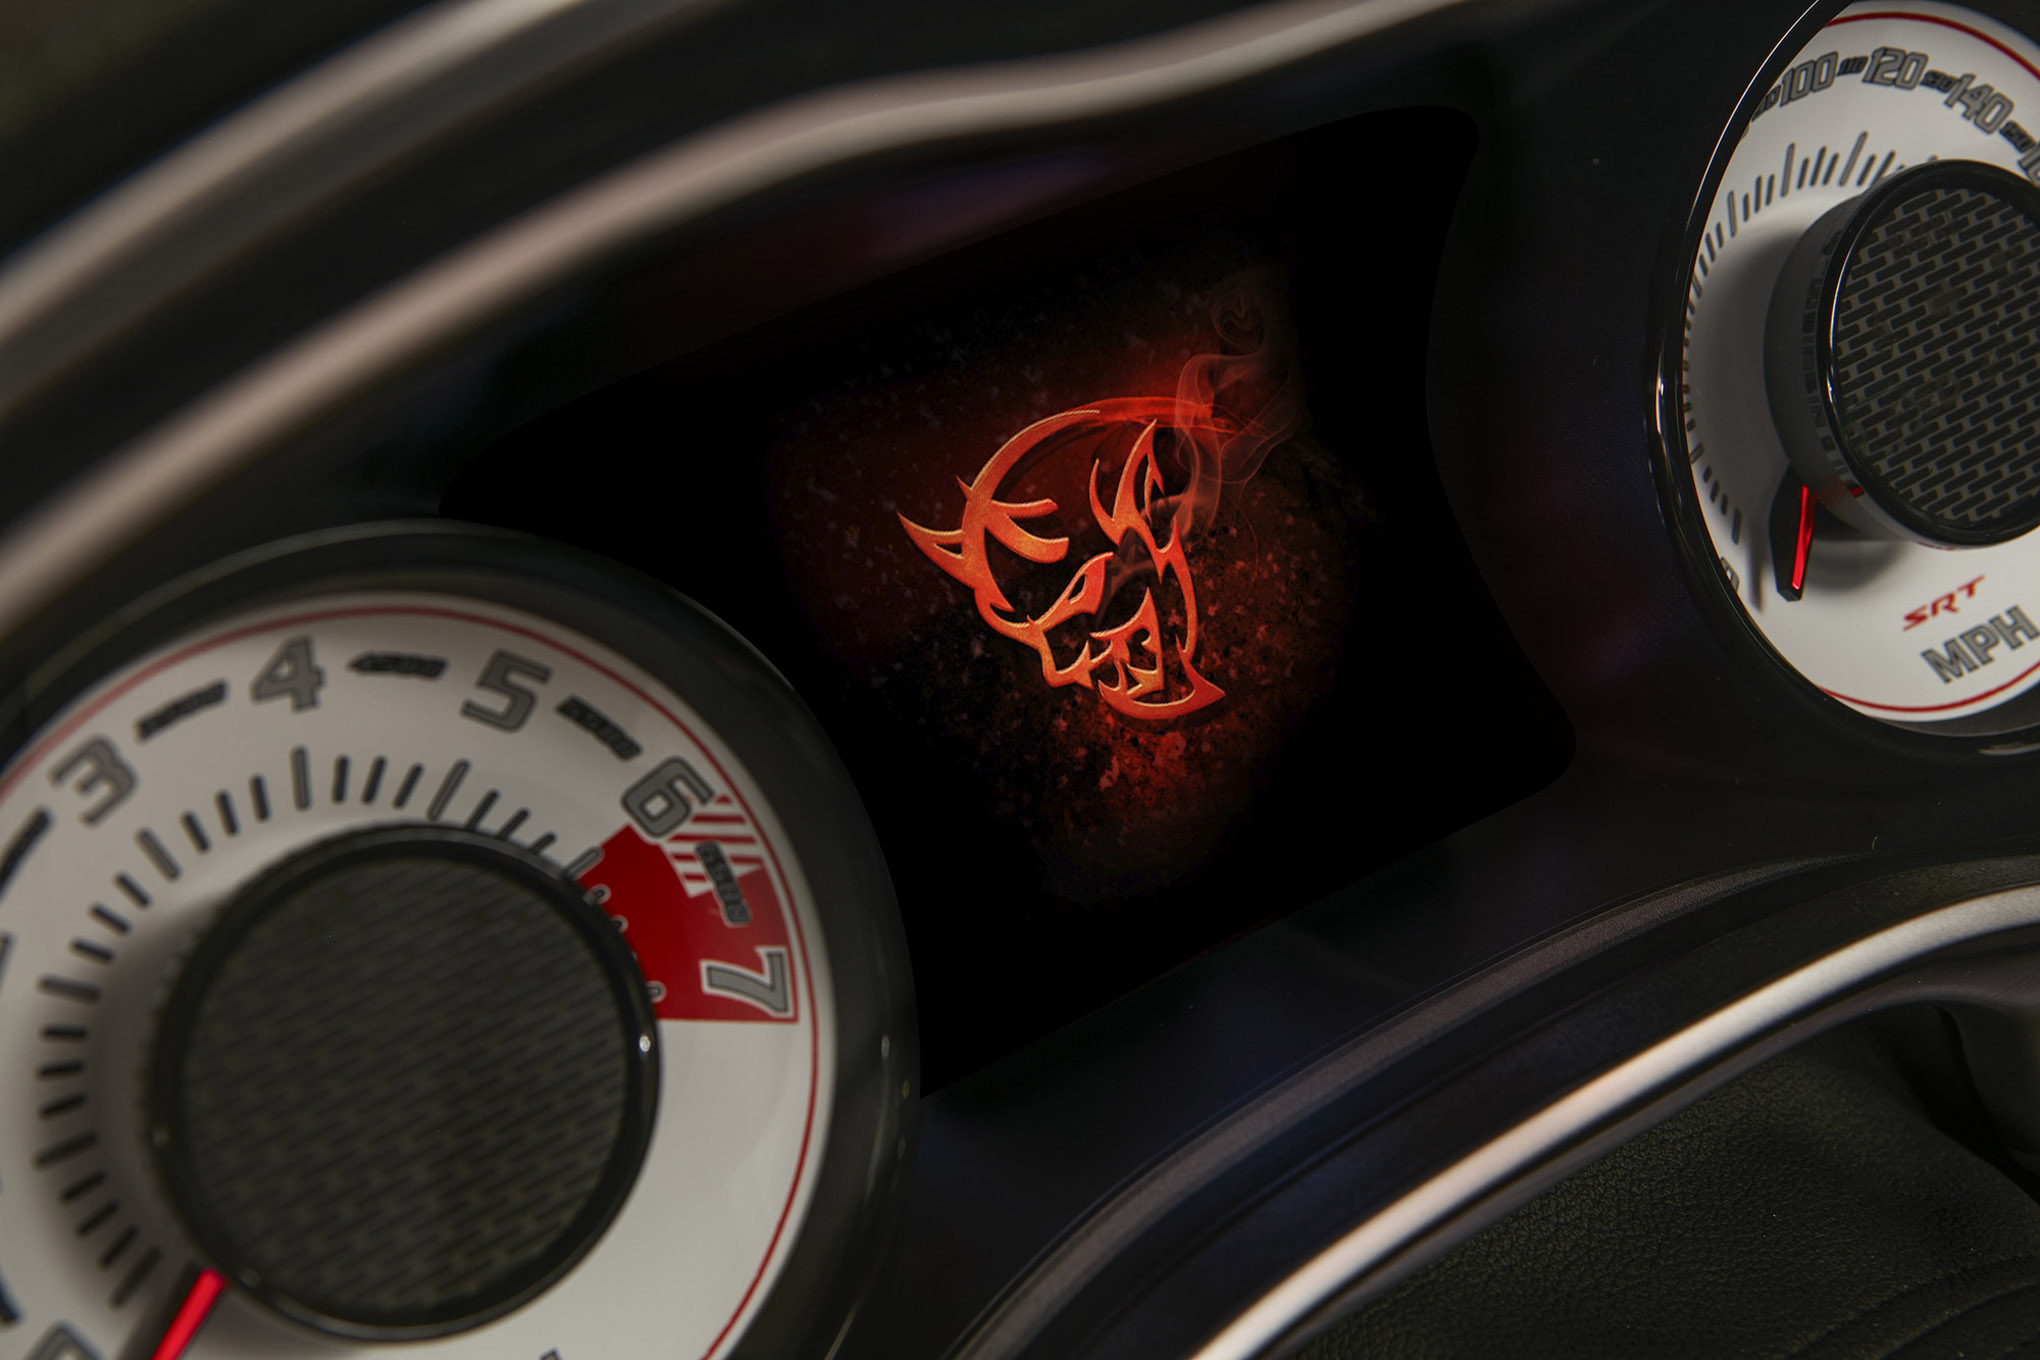 The Demon logo startup screen displayed on the 2018 Dodge Challe